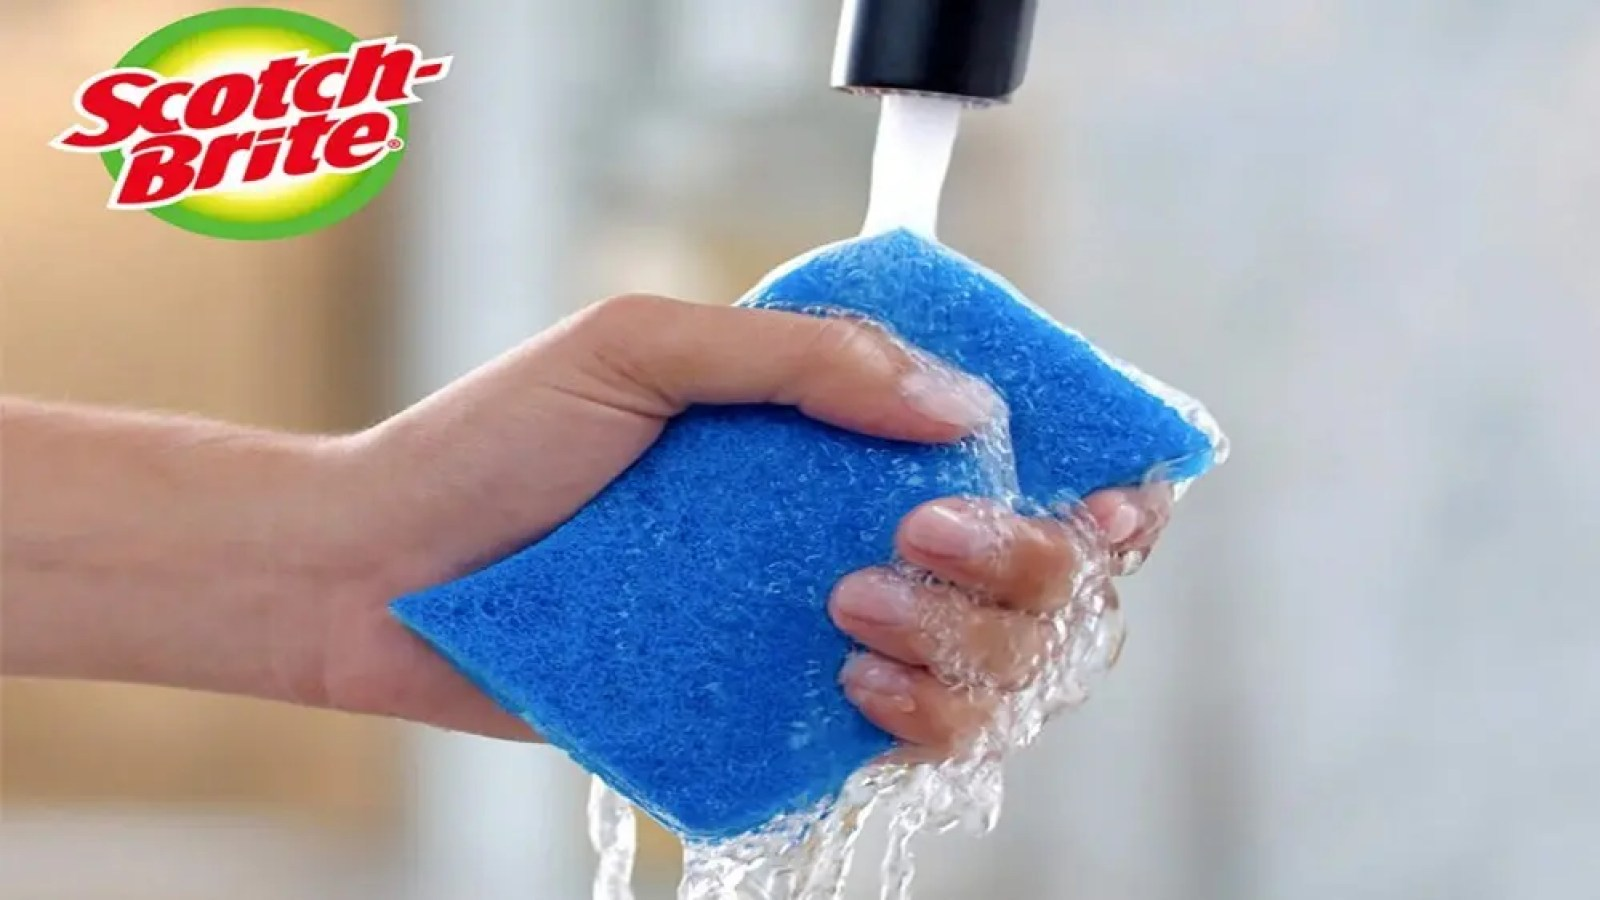 Someone holding a fresh sponge under the faucet, with the scotch-brite logo in the top left hand corner of the image.